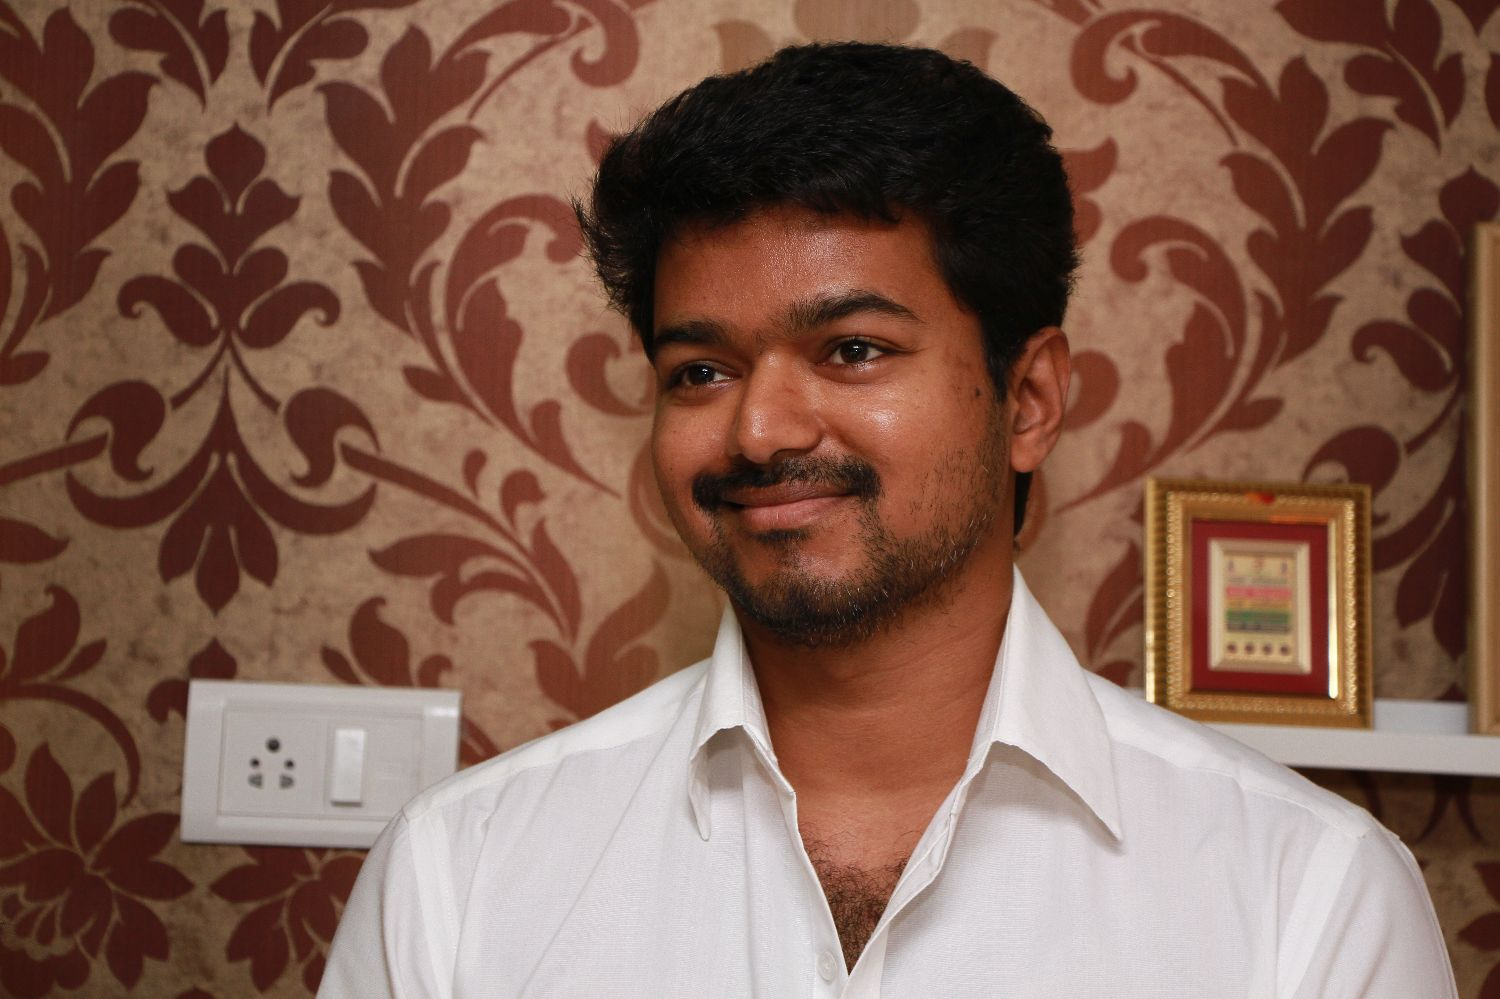 Actor Vijay's latest film sparks controversy - YouTube